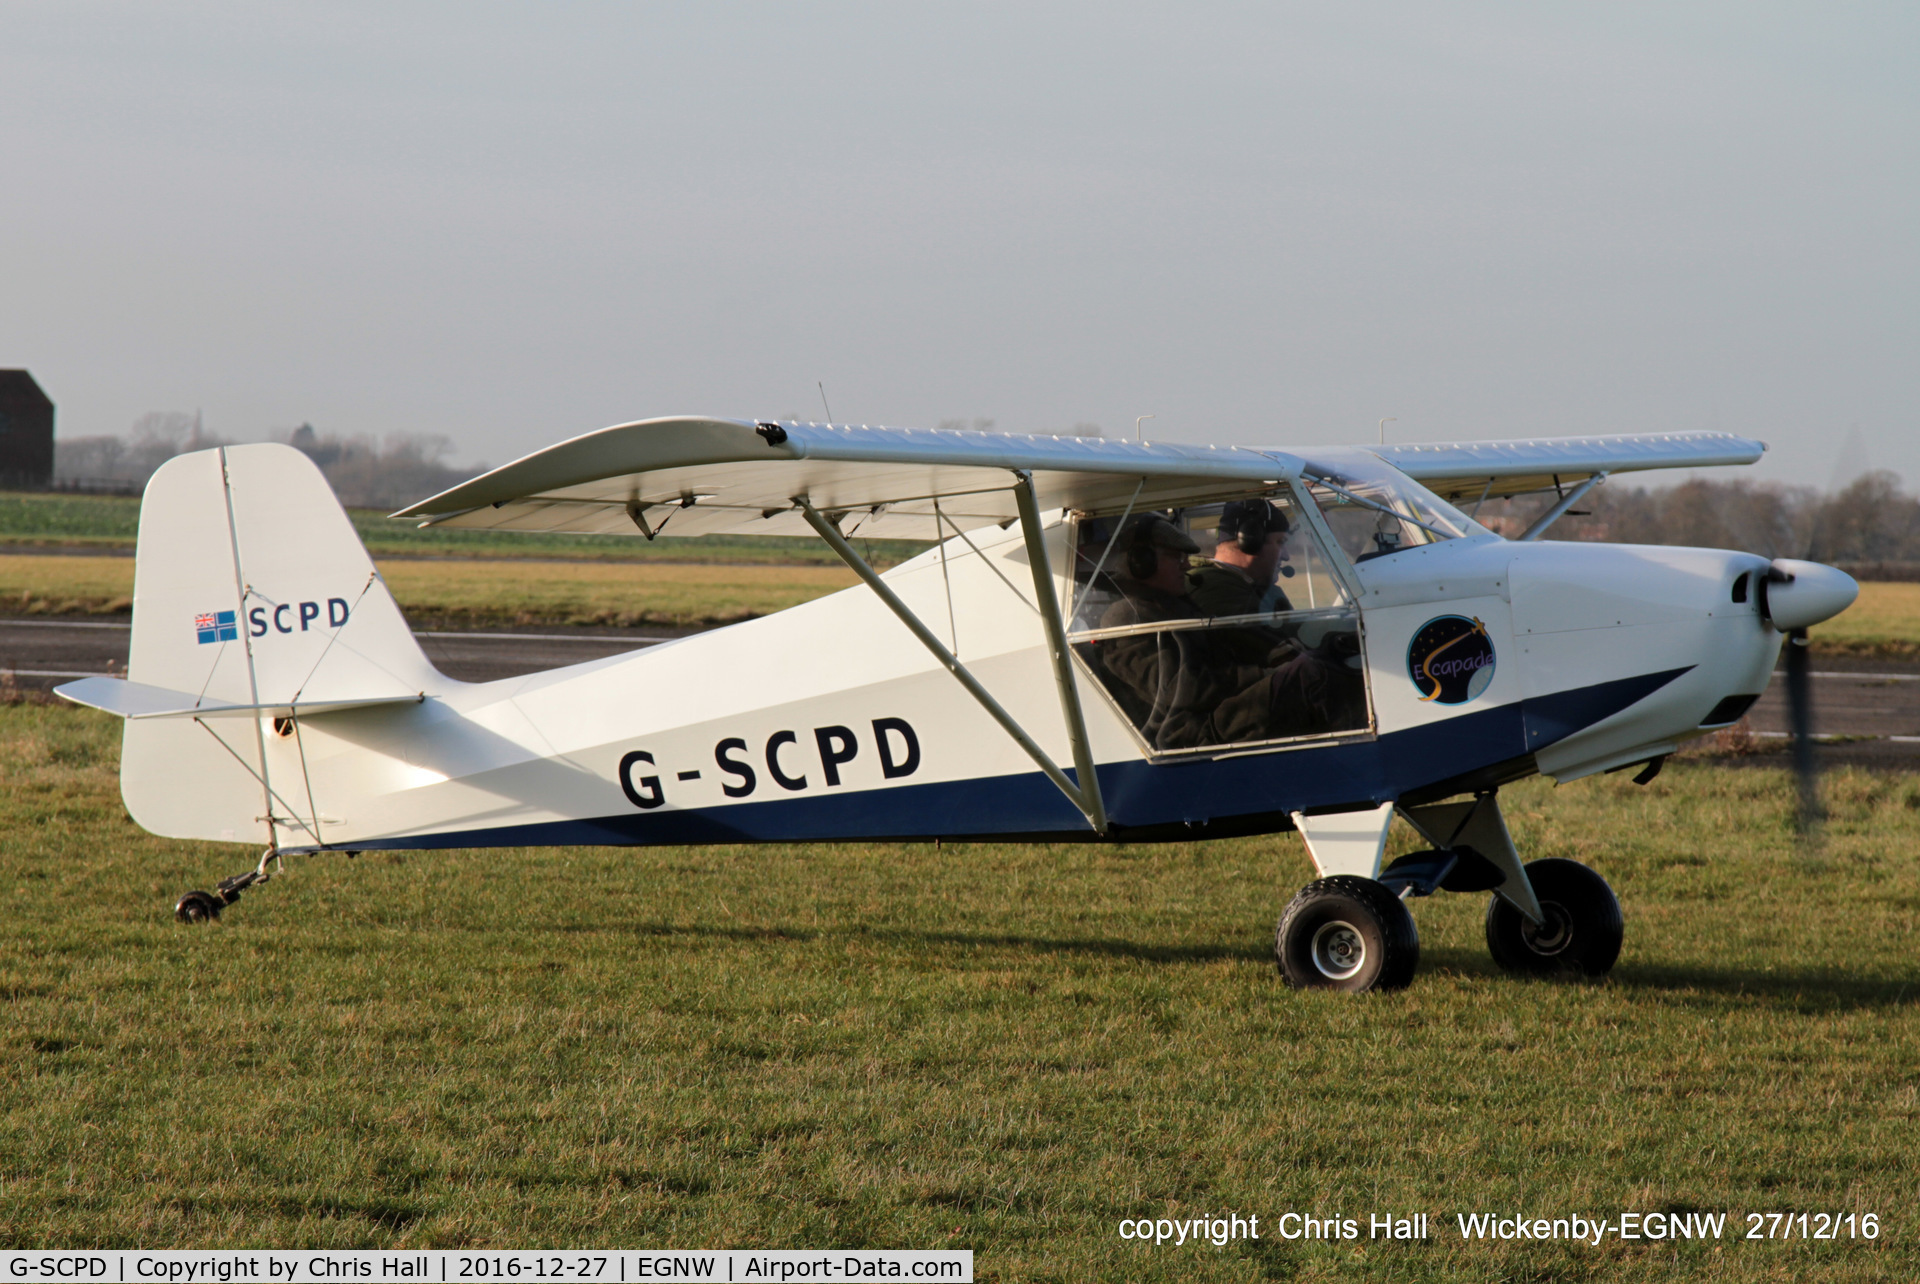 G-SCPD, 2004 Reality Escapade 912(1) C/N BMAA/HB/319, at the Wickenby